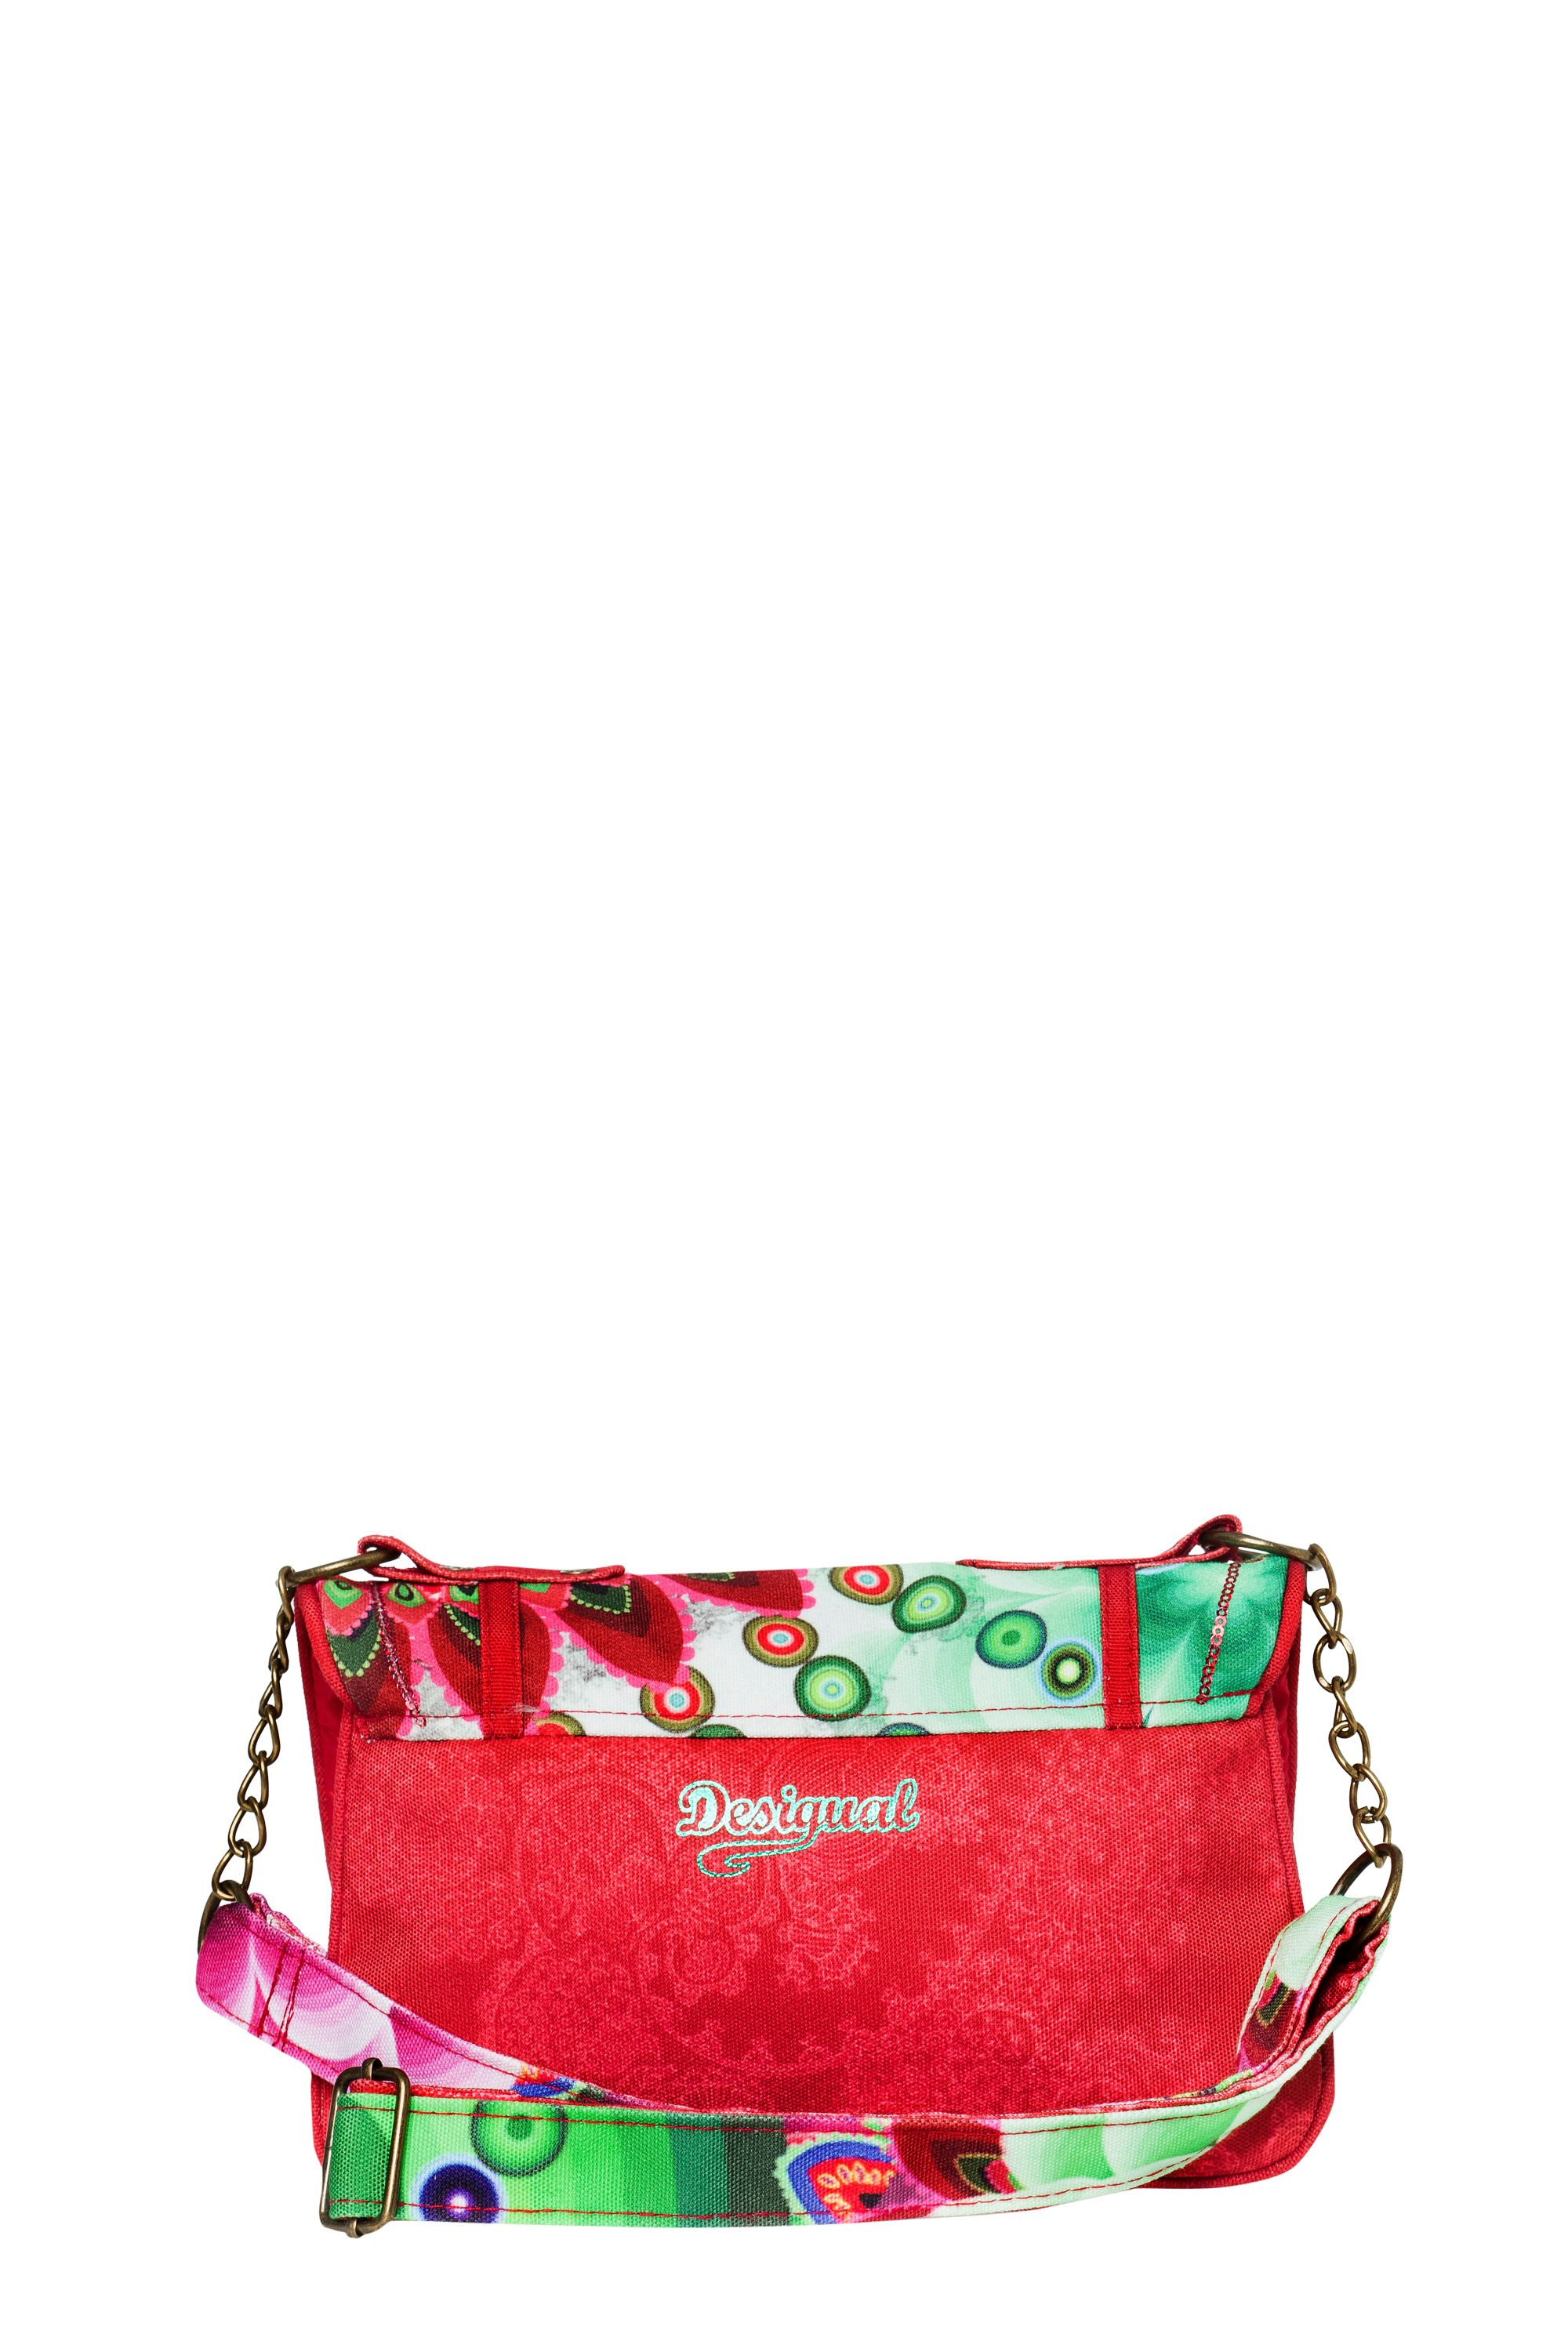 Girls norte crossbody bag